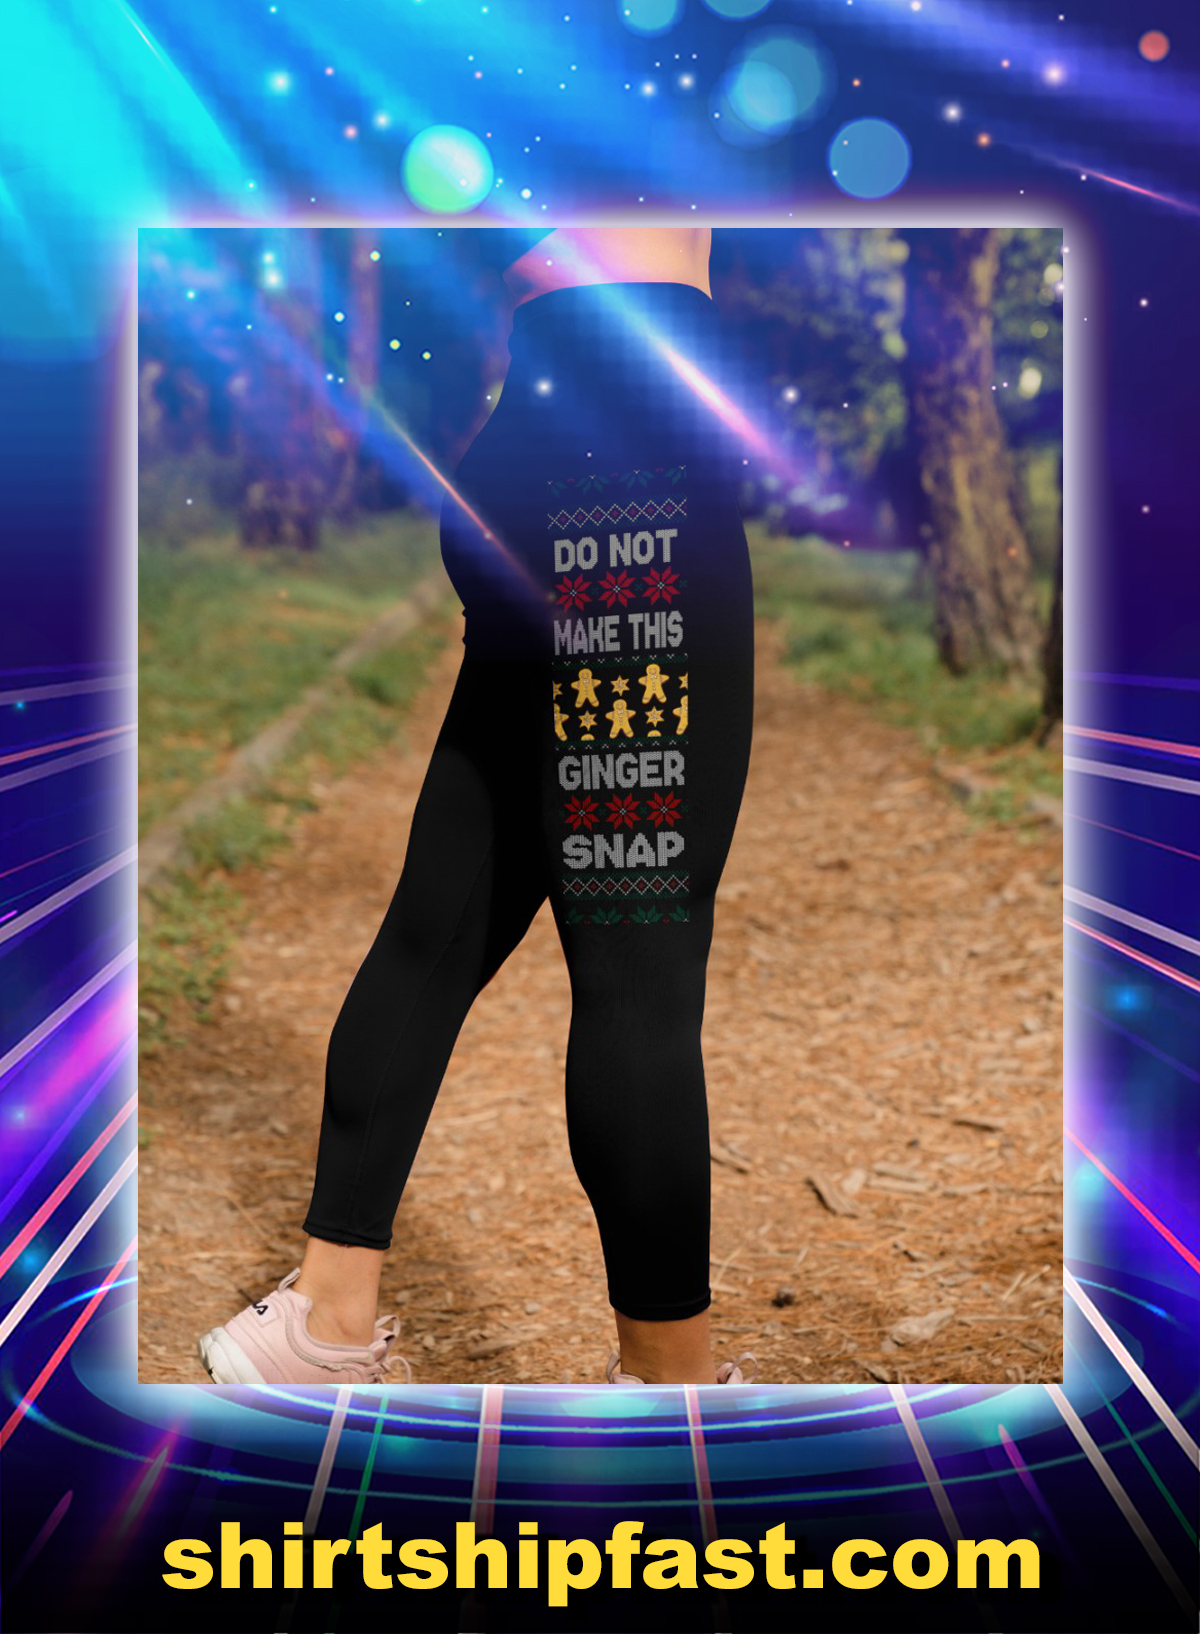 Do not make this ginger snap leggings - Picture 1